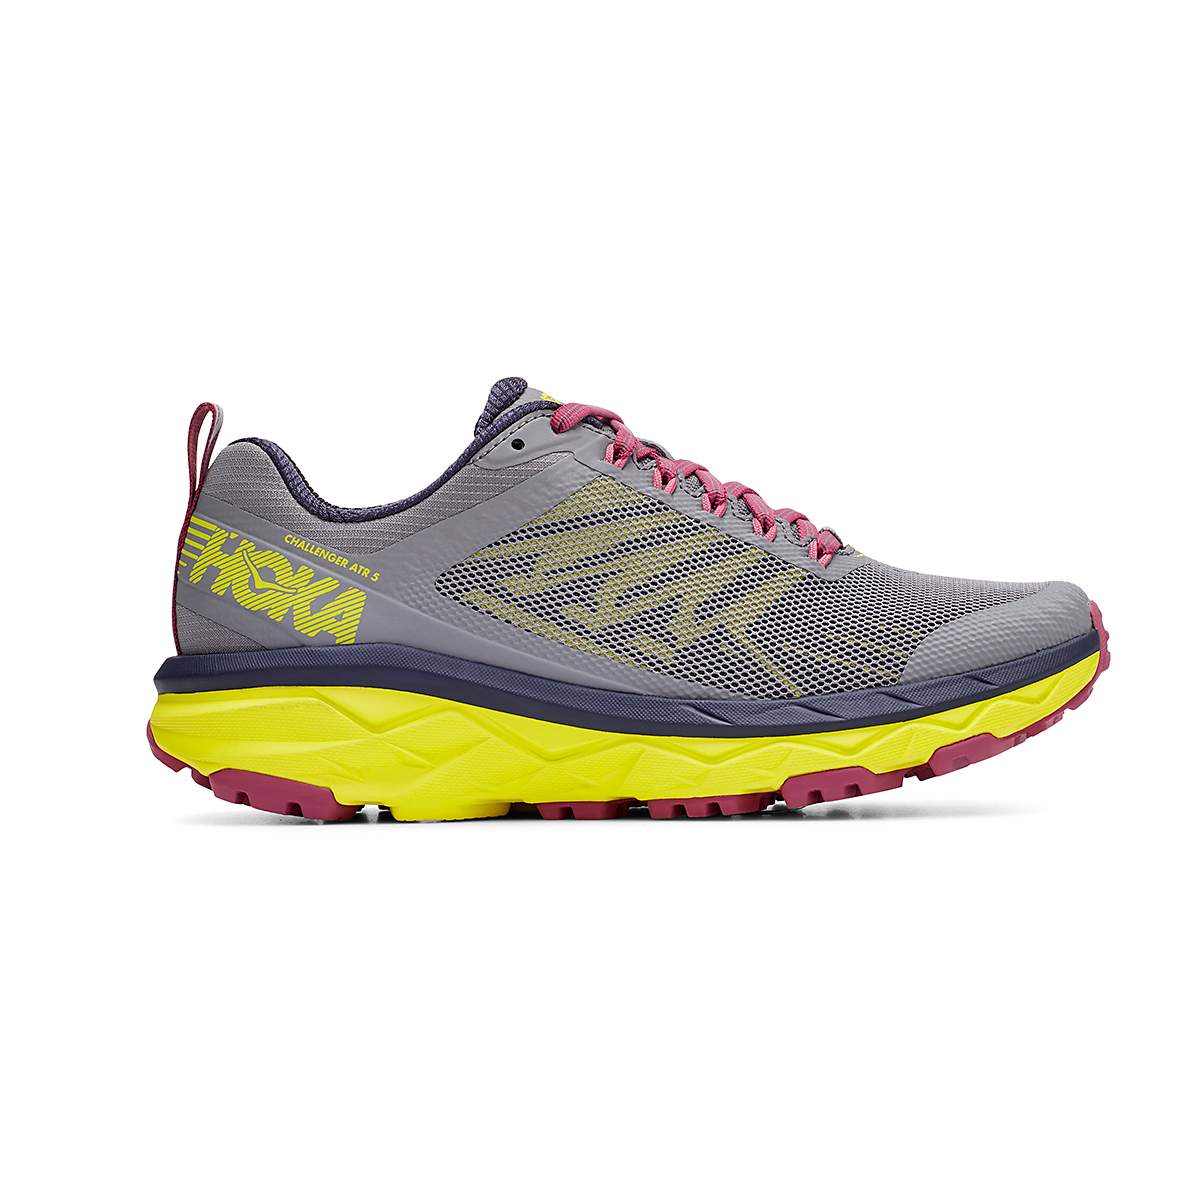 Women's Hoka One One Challenger ATR 5 Trail Running Shoe - Color: Frost Gray/Evening Primrose - Size: 5 - Width: Regular, Frost Gray/Evening Primrose, large, image 1